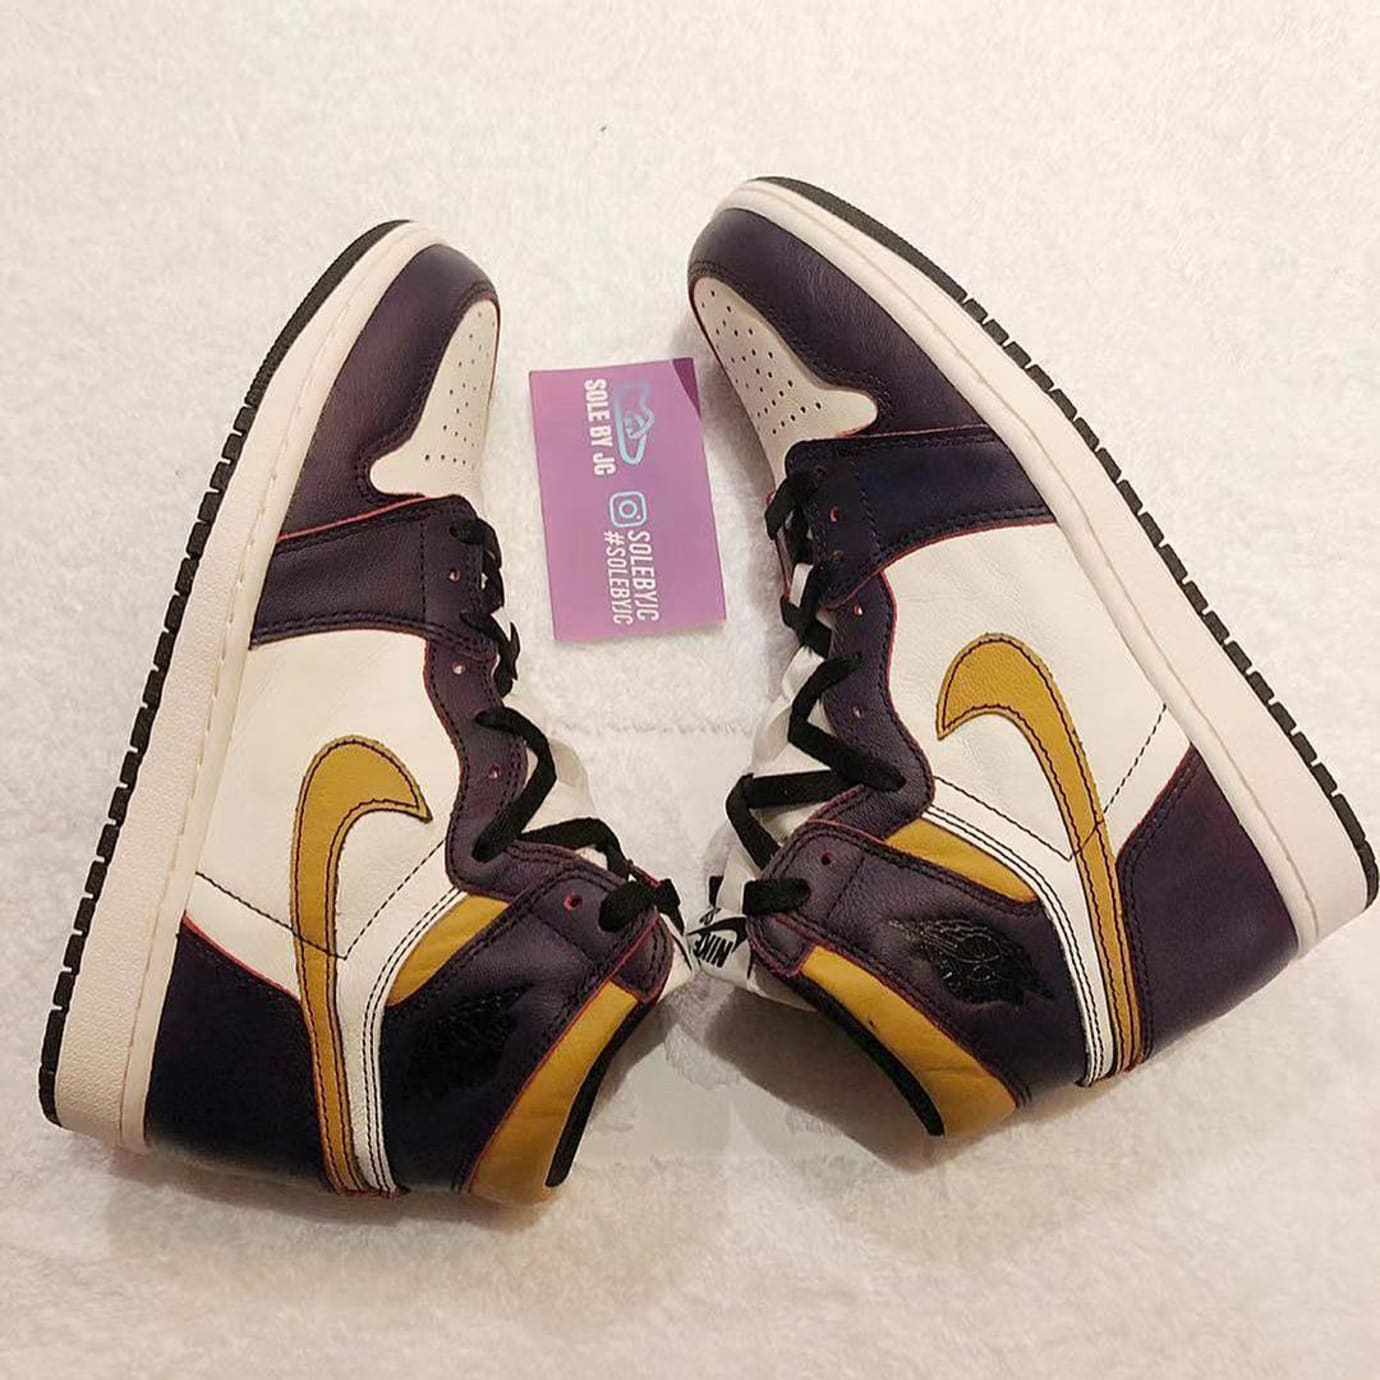 Nike SB x Air Jordan 1 'Lakers' CD6578-507 3